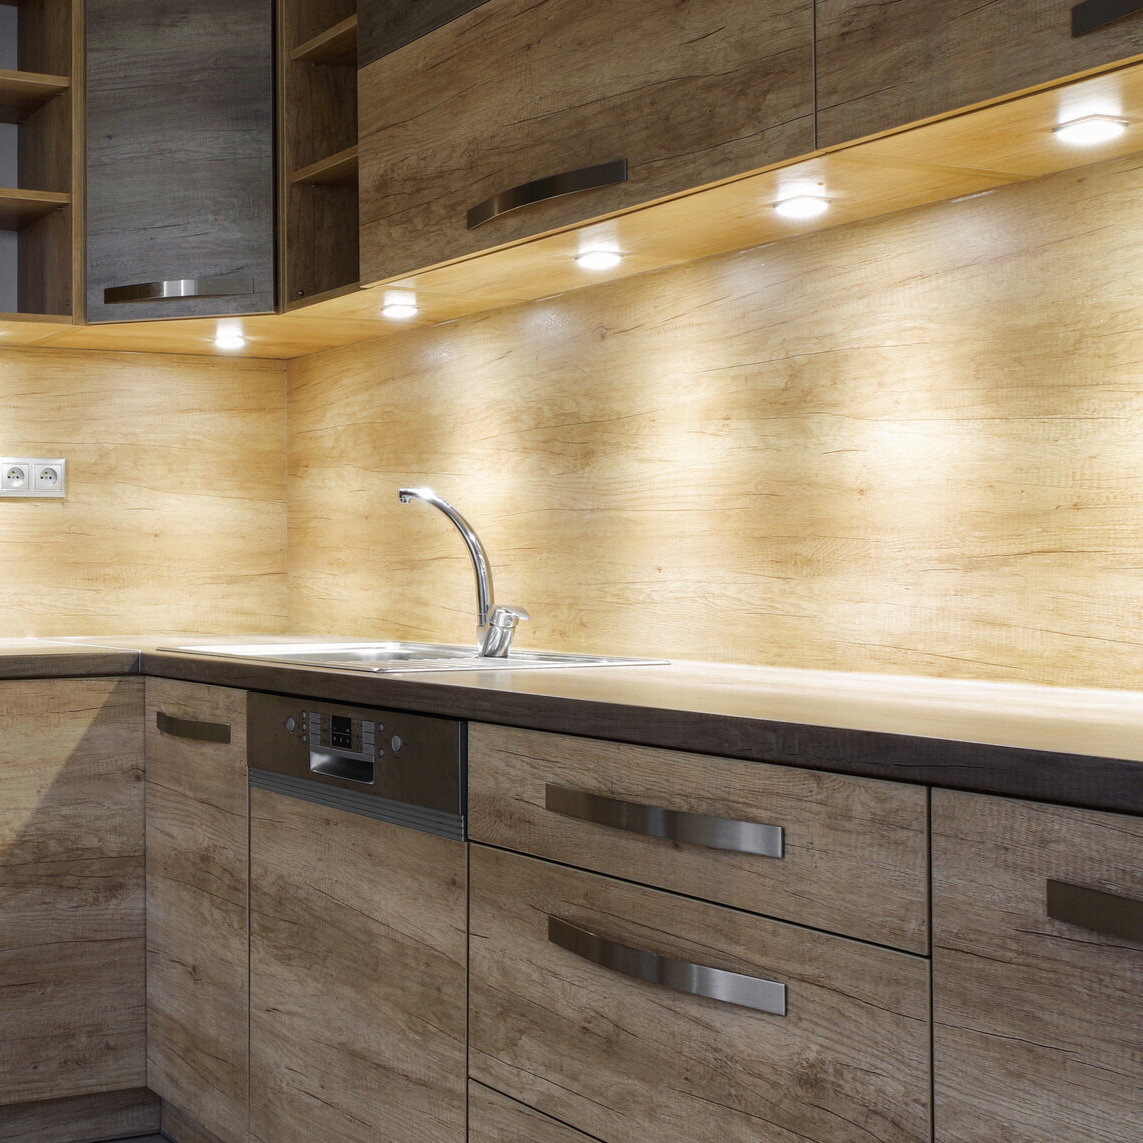 5 Types Of Under Cabinet Lighting Pros Cons 1000bulbs Com Blog